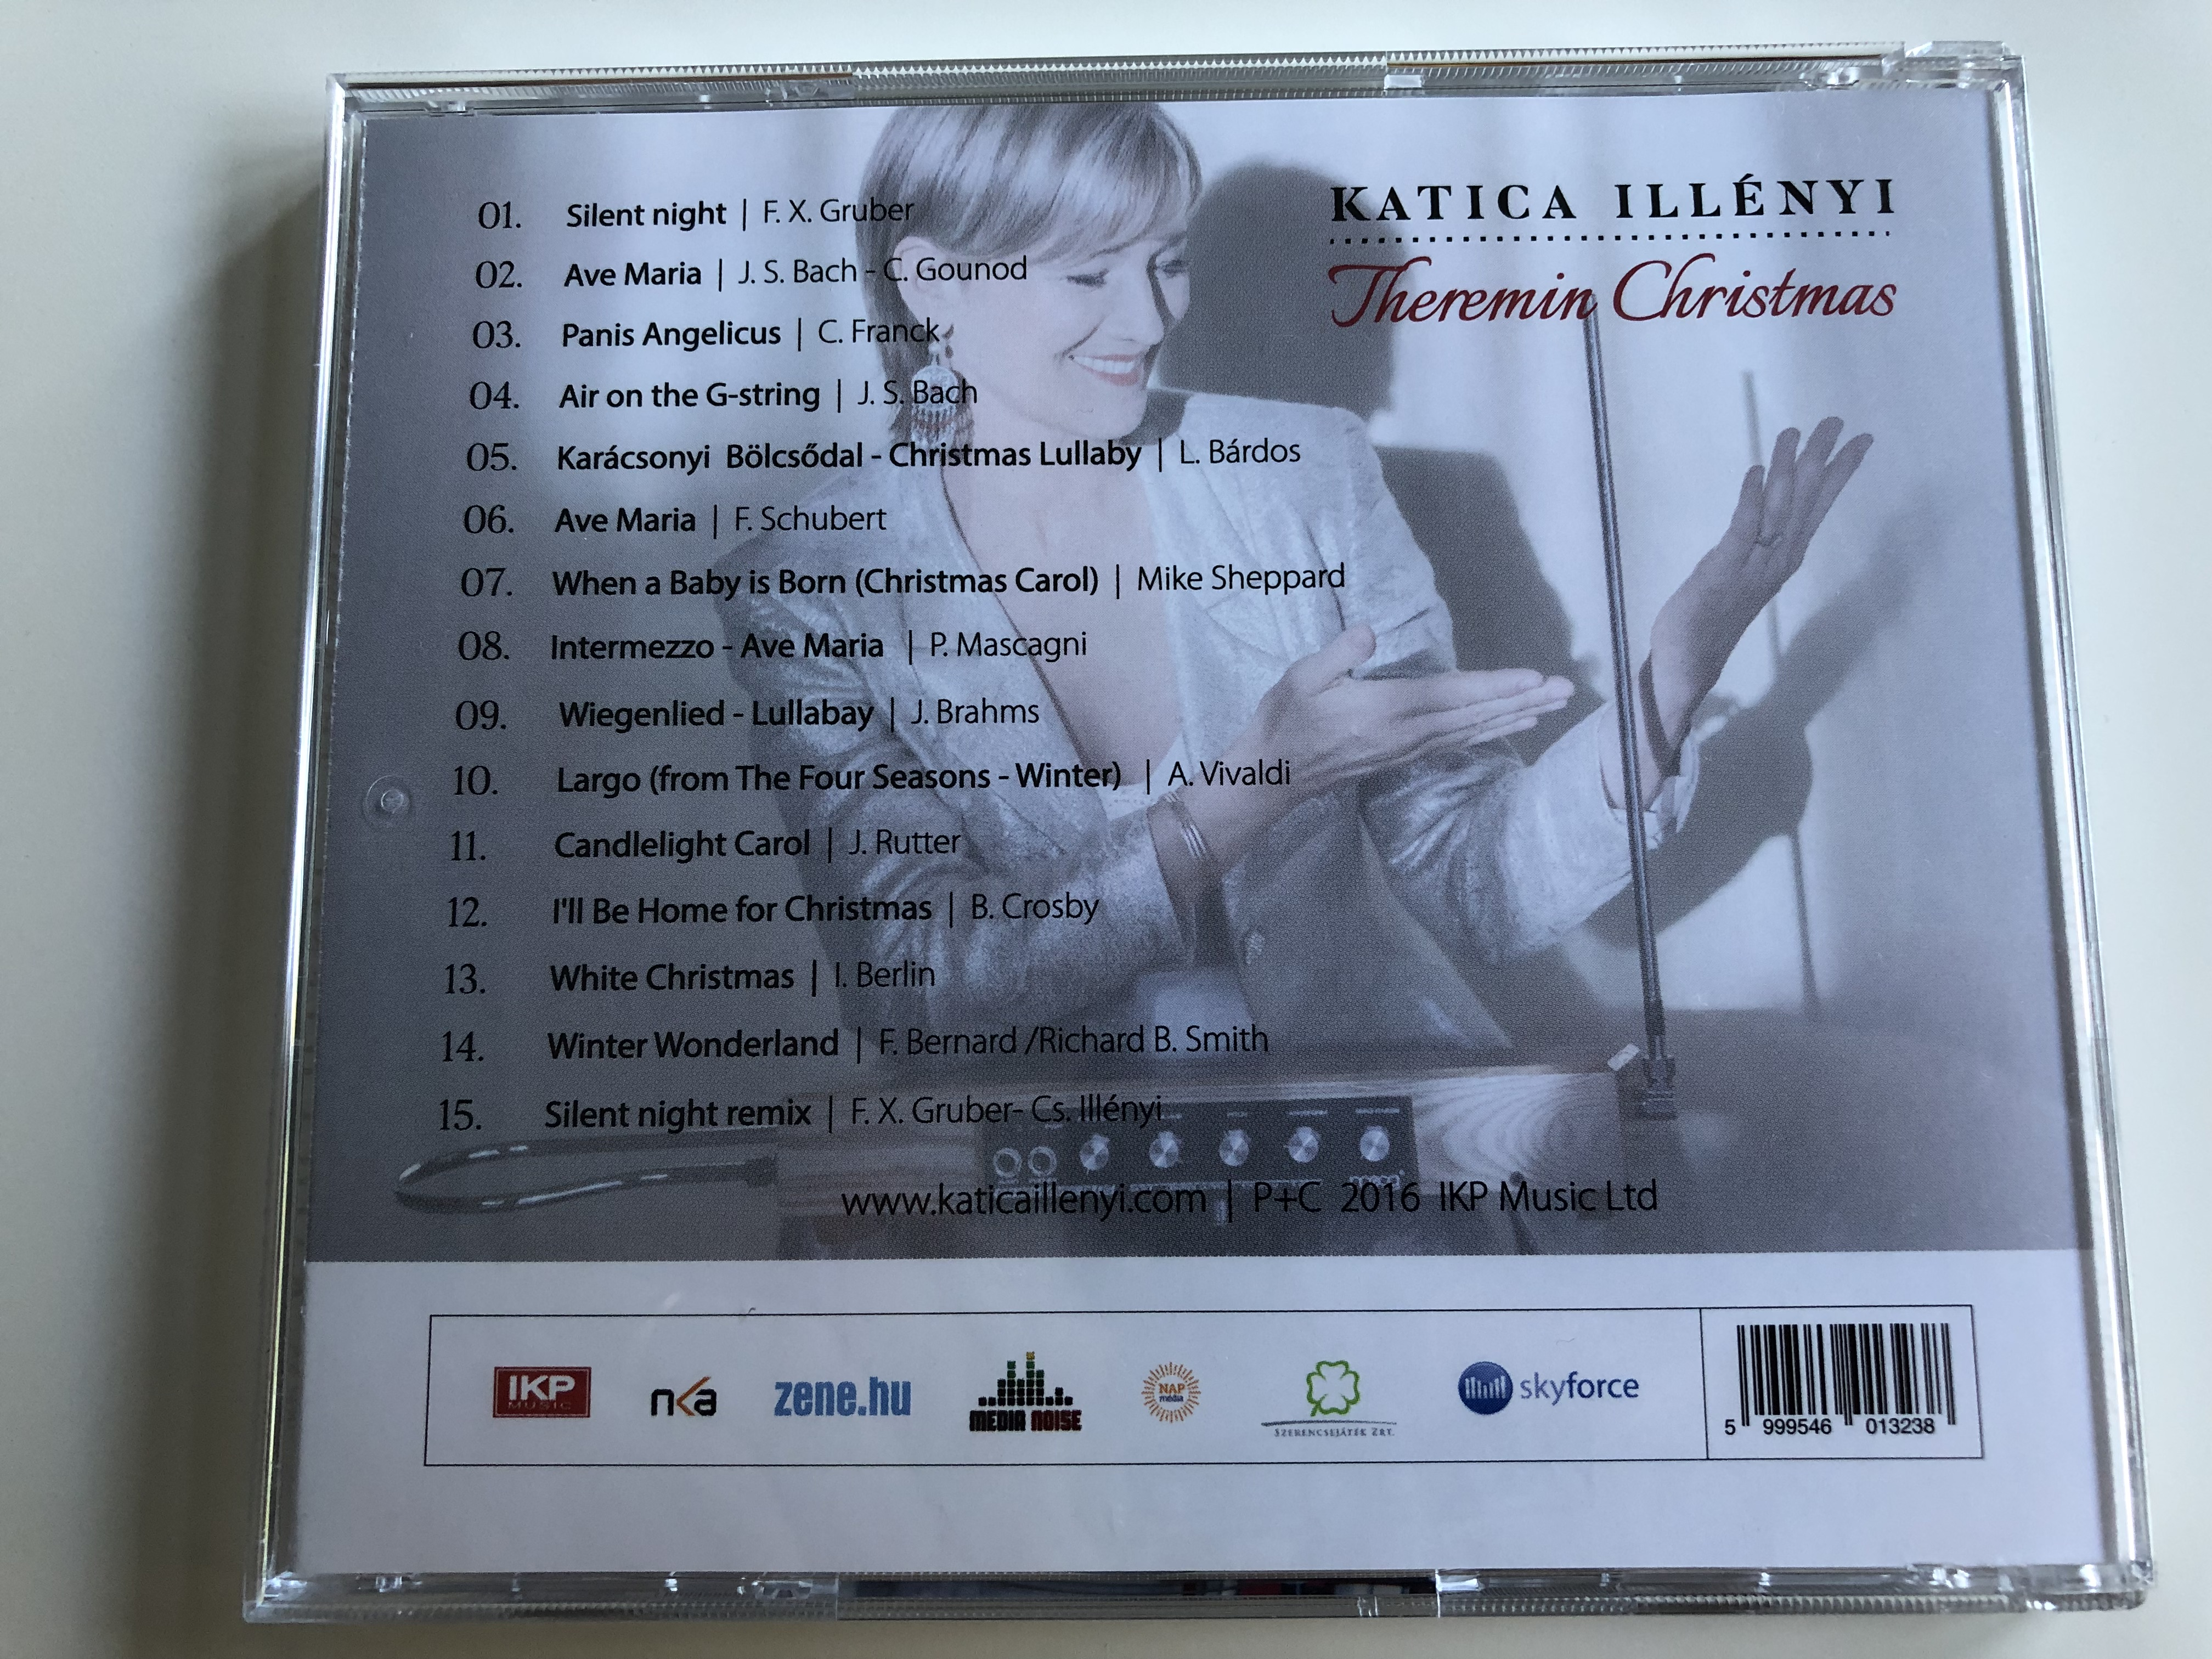 katica-ill-nyi-theremin-christmas-silent-night-air-on-the-g-string-white-christmas-audio-cd-2016-6-.jpg